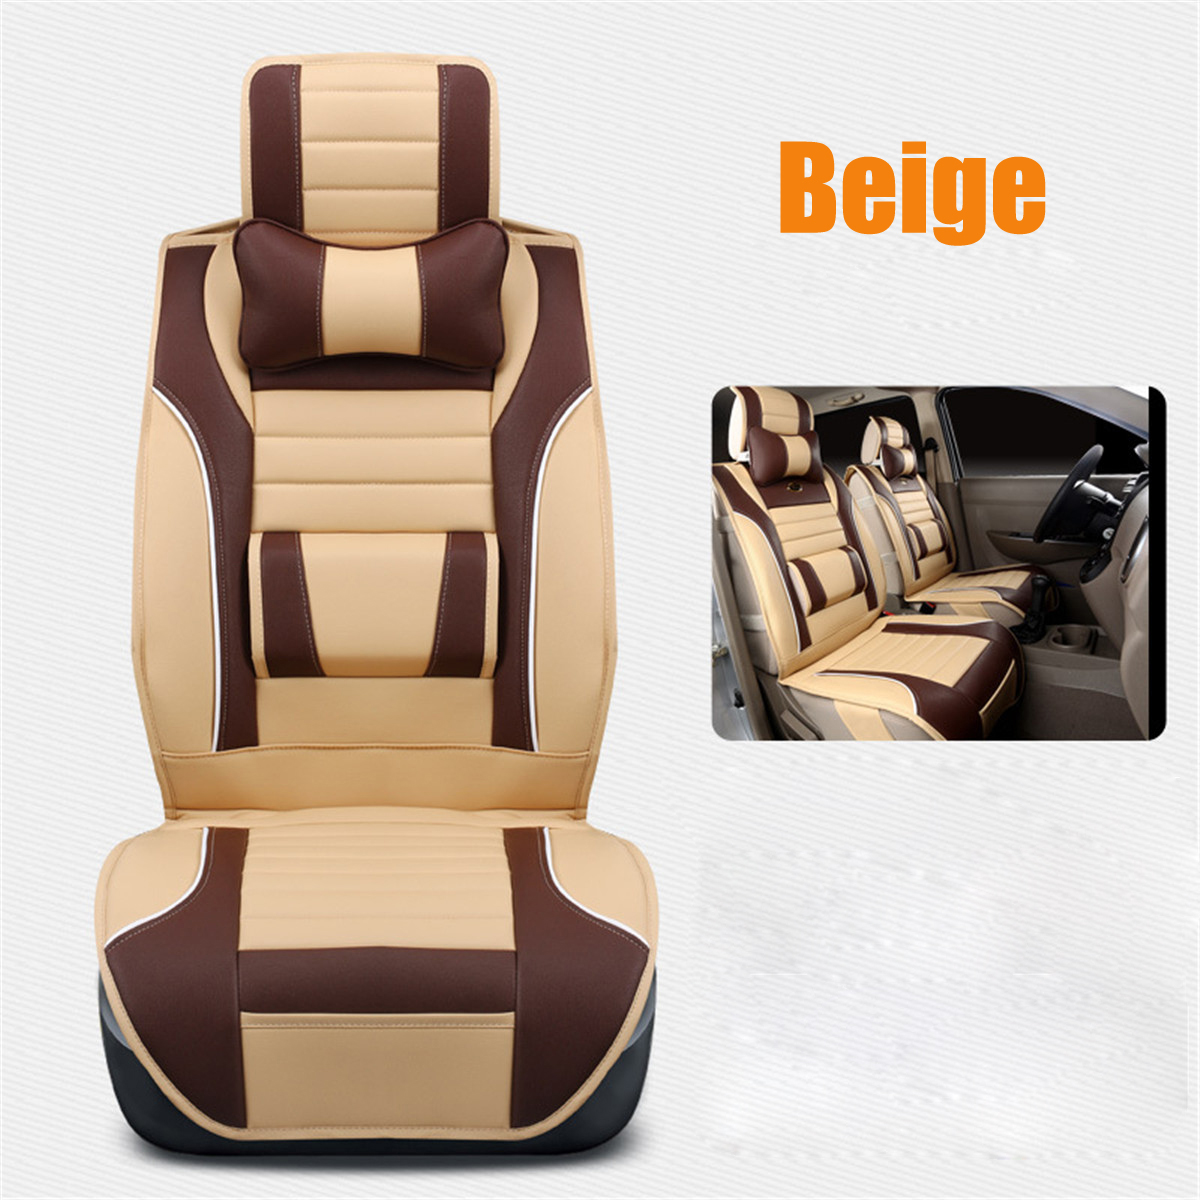 1Pcs Luxury Full Surround Front Rear PU Leather Car Seat Cover Cushion Headrest Pillow